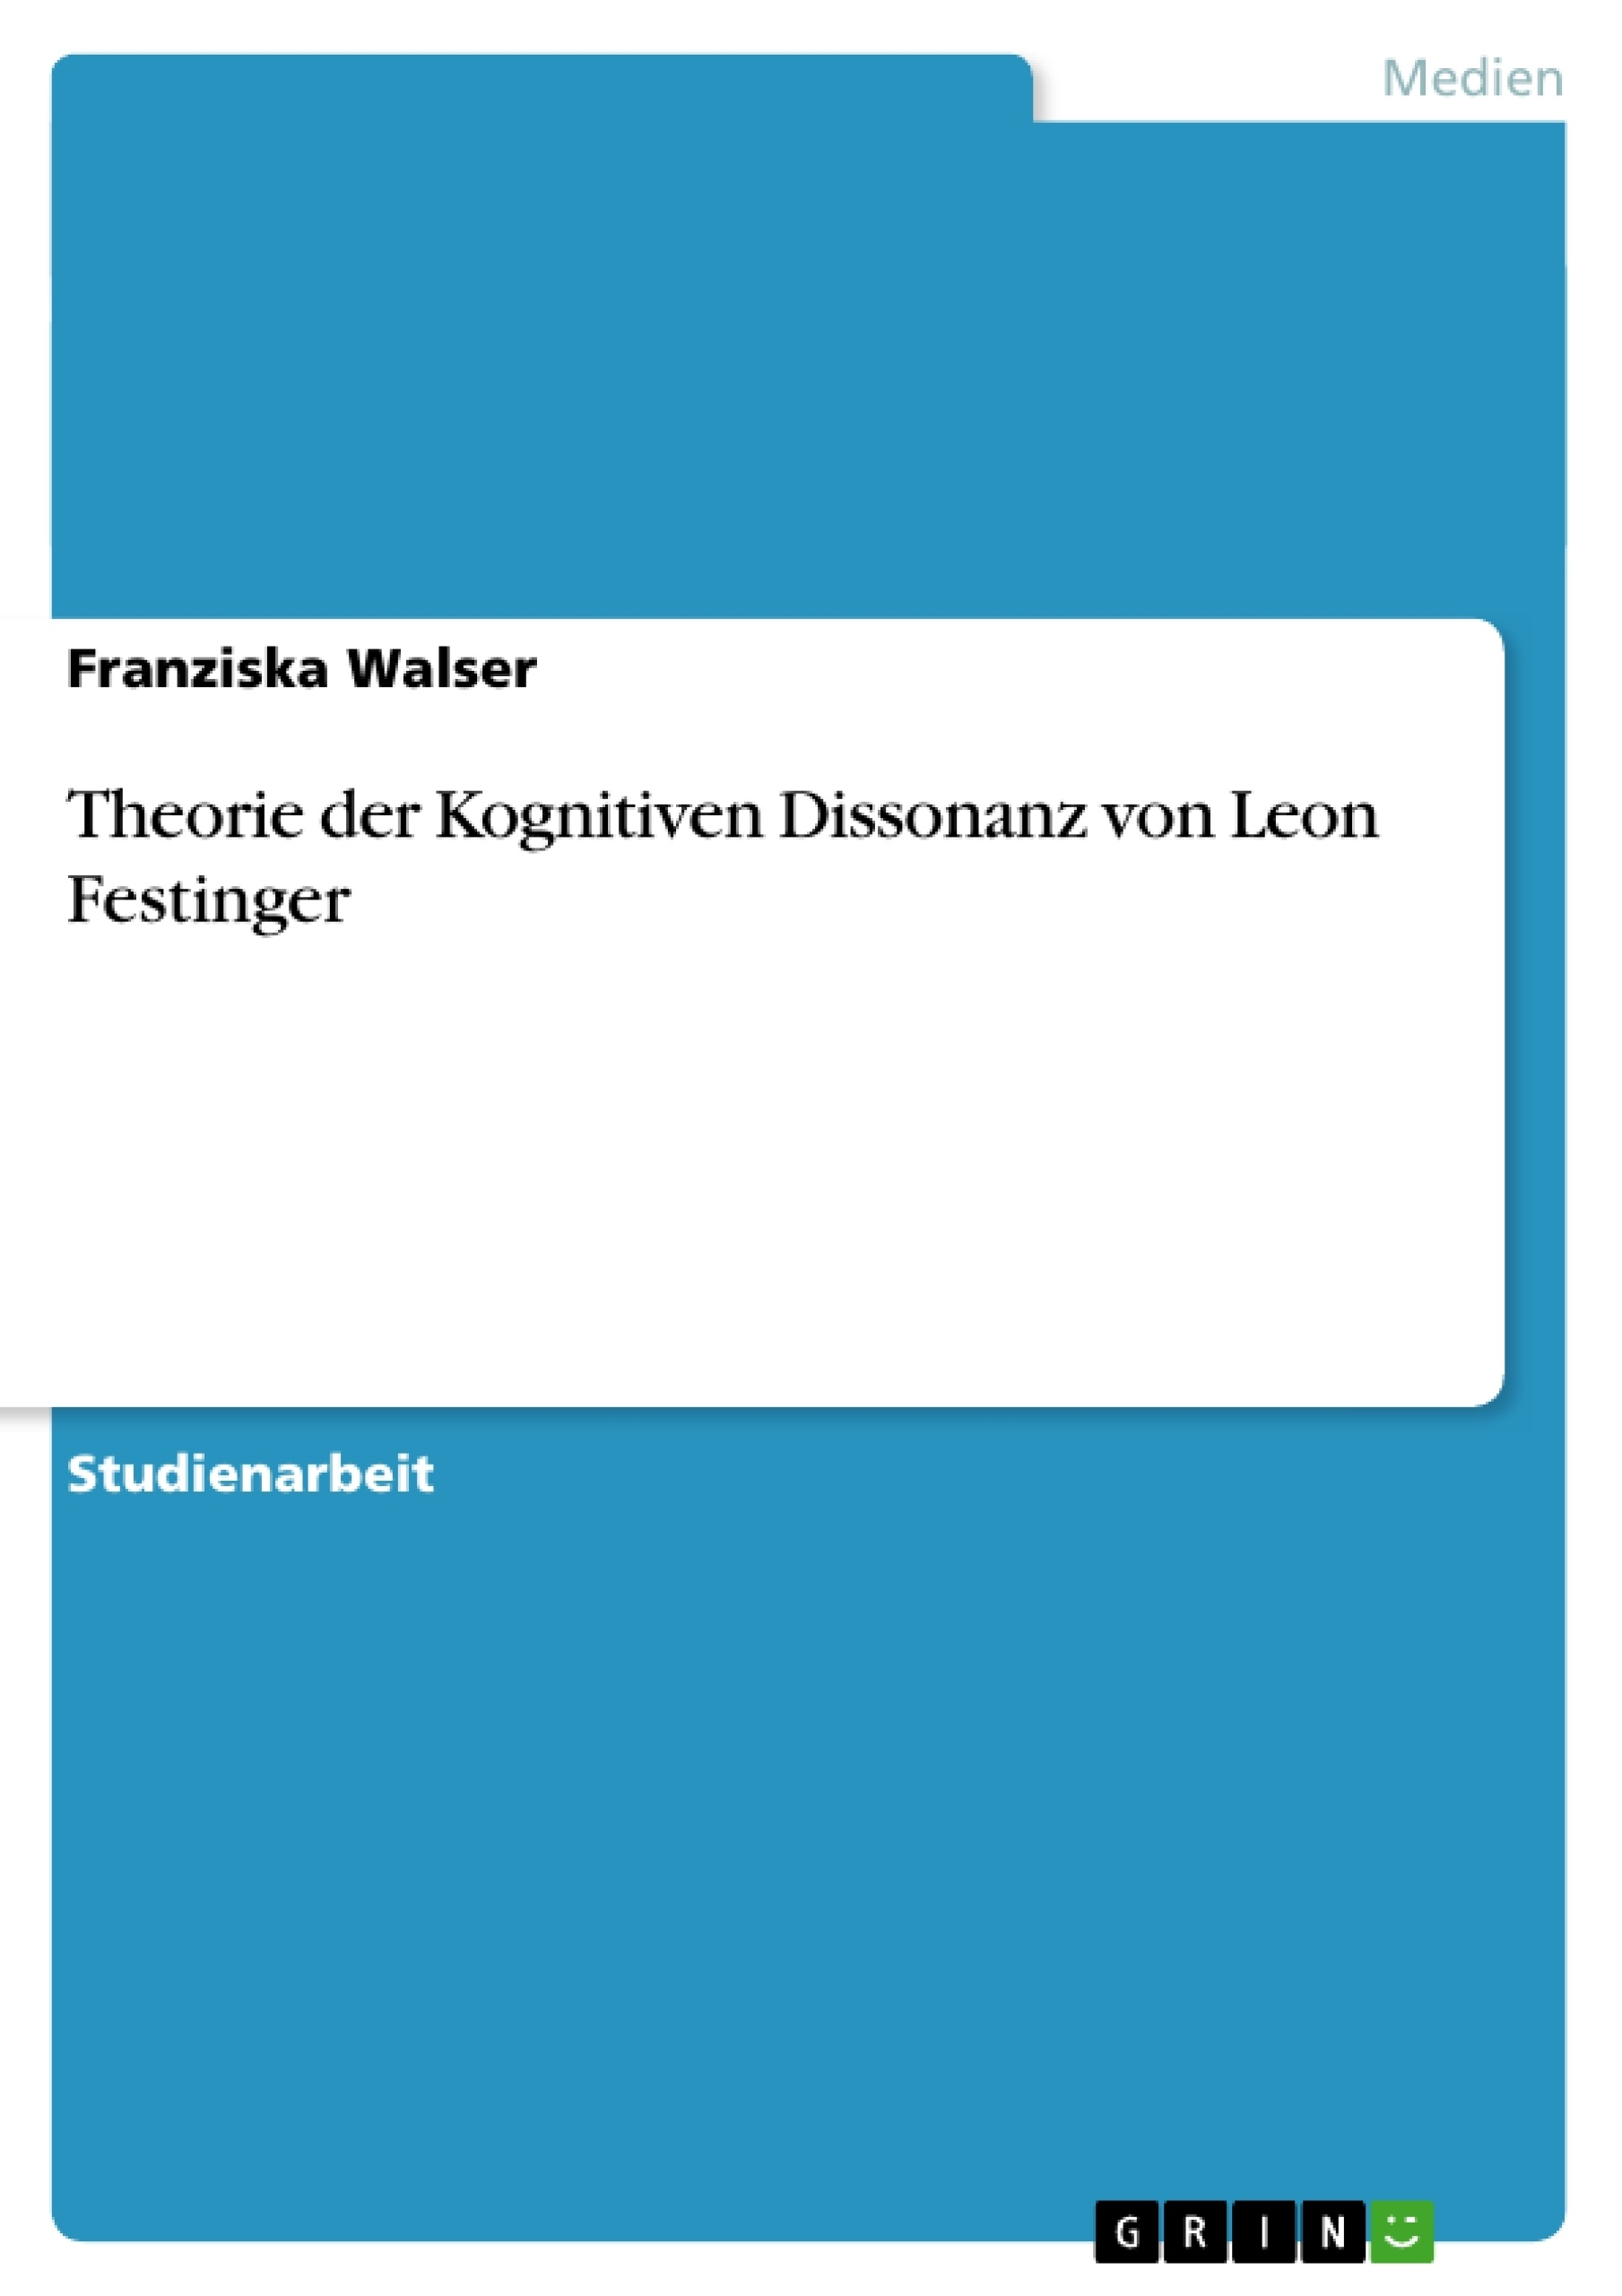 leon festinger research paper Request pdf on researchgate   an introduction to cognitive dissonance theory and an overview of current perspectives on the theory   a little more than 40 years ago, leon festinger published a theory of cognitive dissonance (1957).